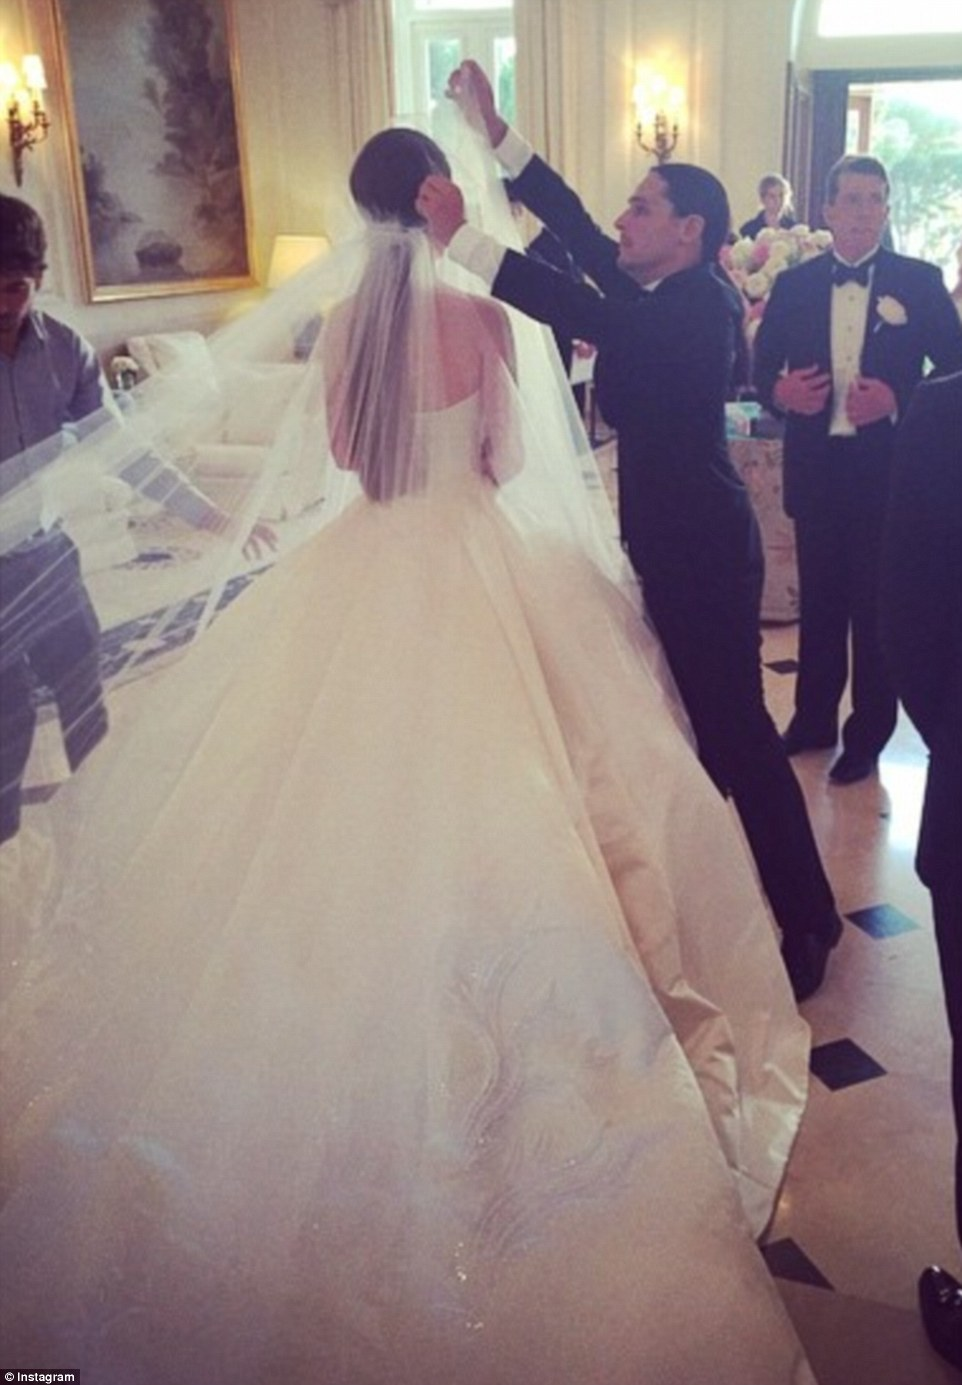 is spectacular wedding dress olivier theyskens designs cinderella gown ex barclay s chief s daughter nell south france extravaganza diamond wedding dresses Last minute Mr Theyskens is pictured adjusting Nell s veil in the moments before she walks